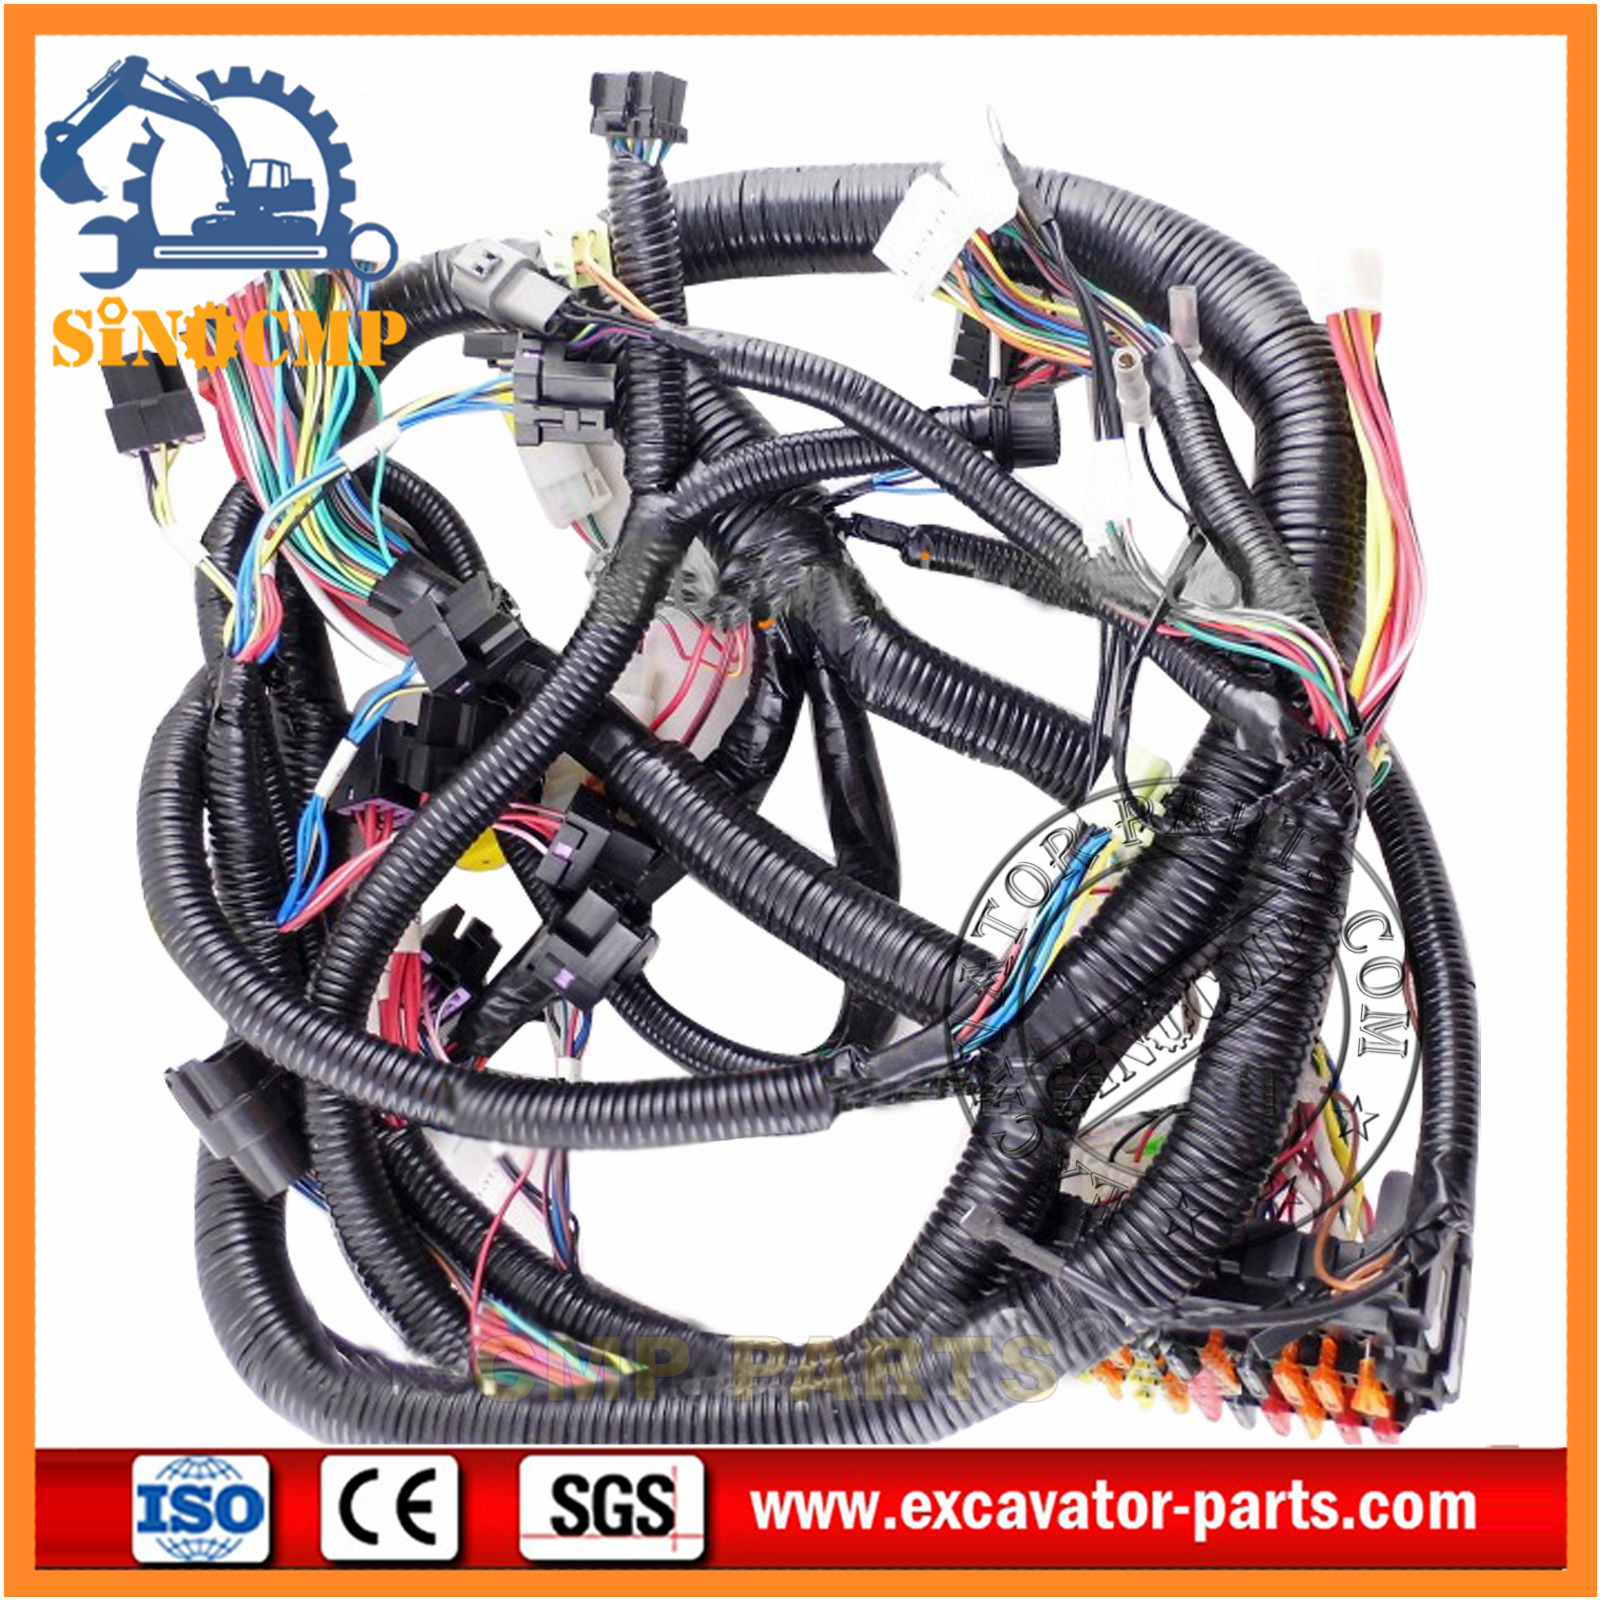 wire toner wiring harness 6 wire trailer wiring harness